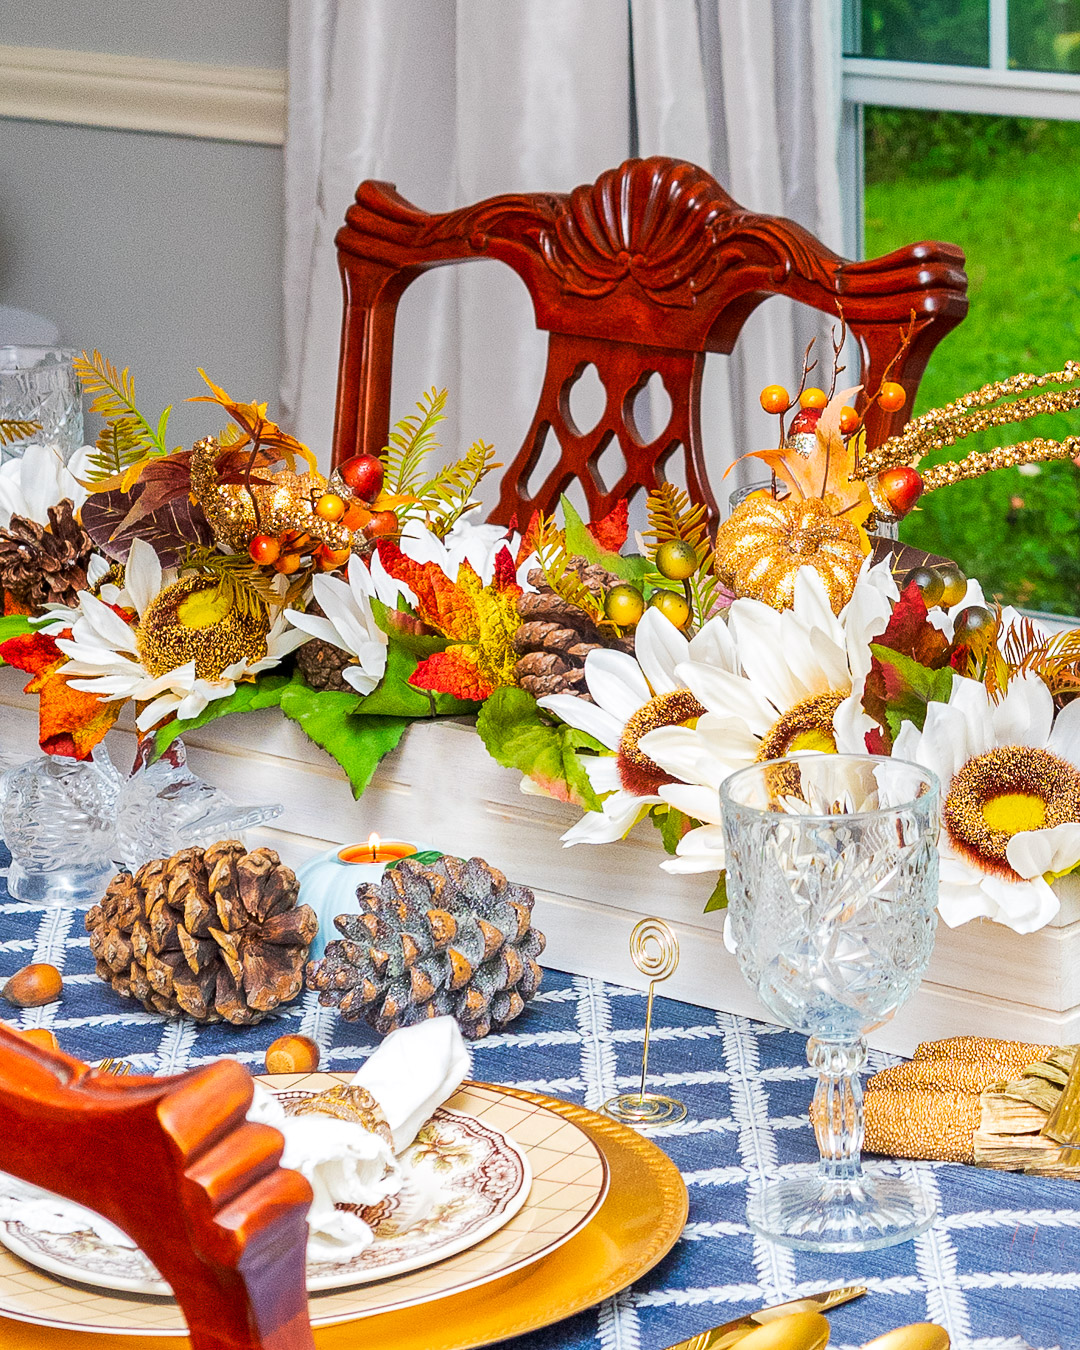 Adding Touches of Fall into Your Existing Home Decor